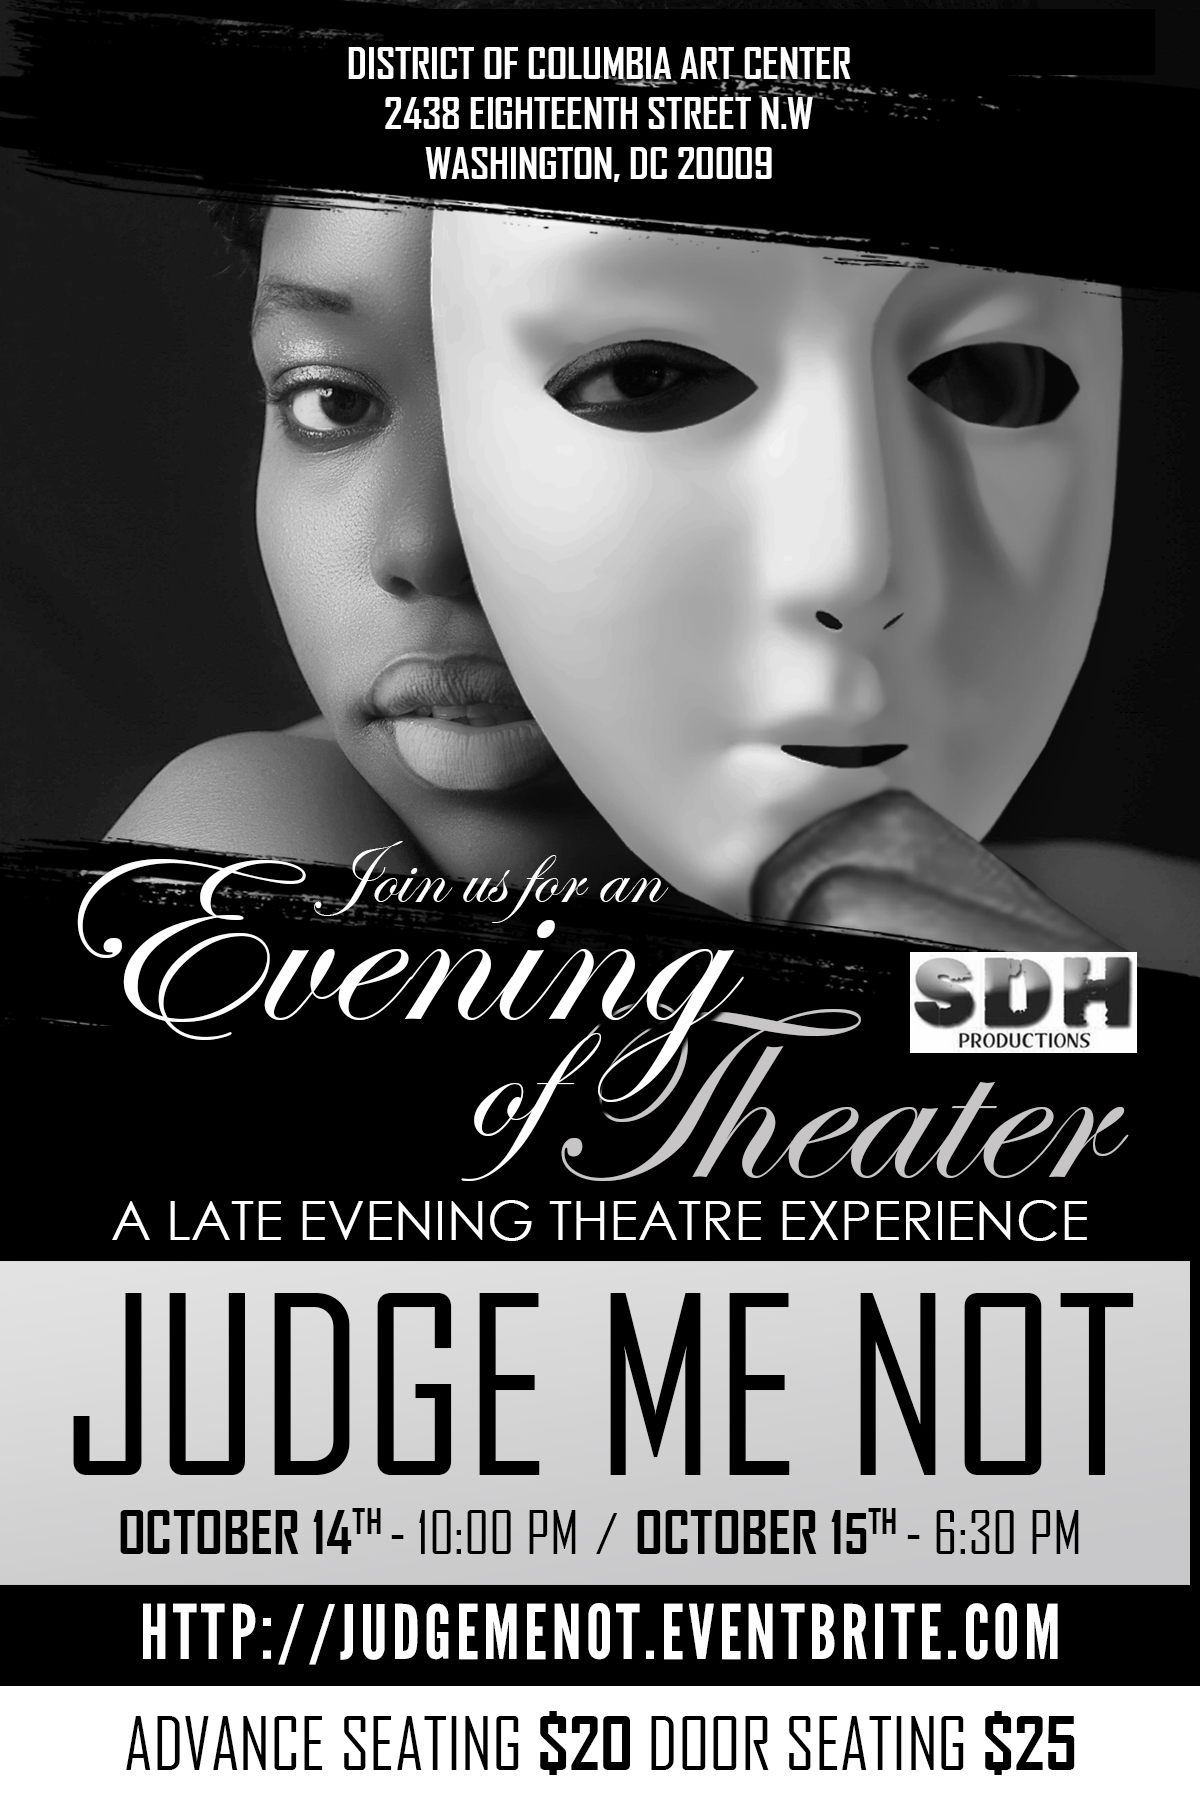 Theatre News: 'Judge Me Not' to Be Presented by SDH Productions at District of Columbia Arts Center